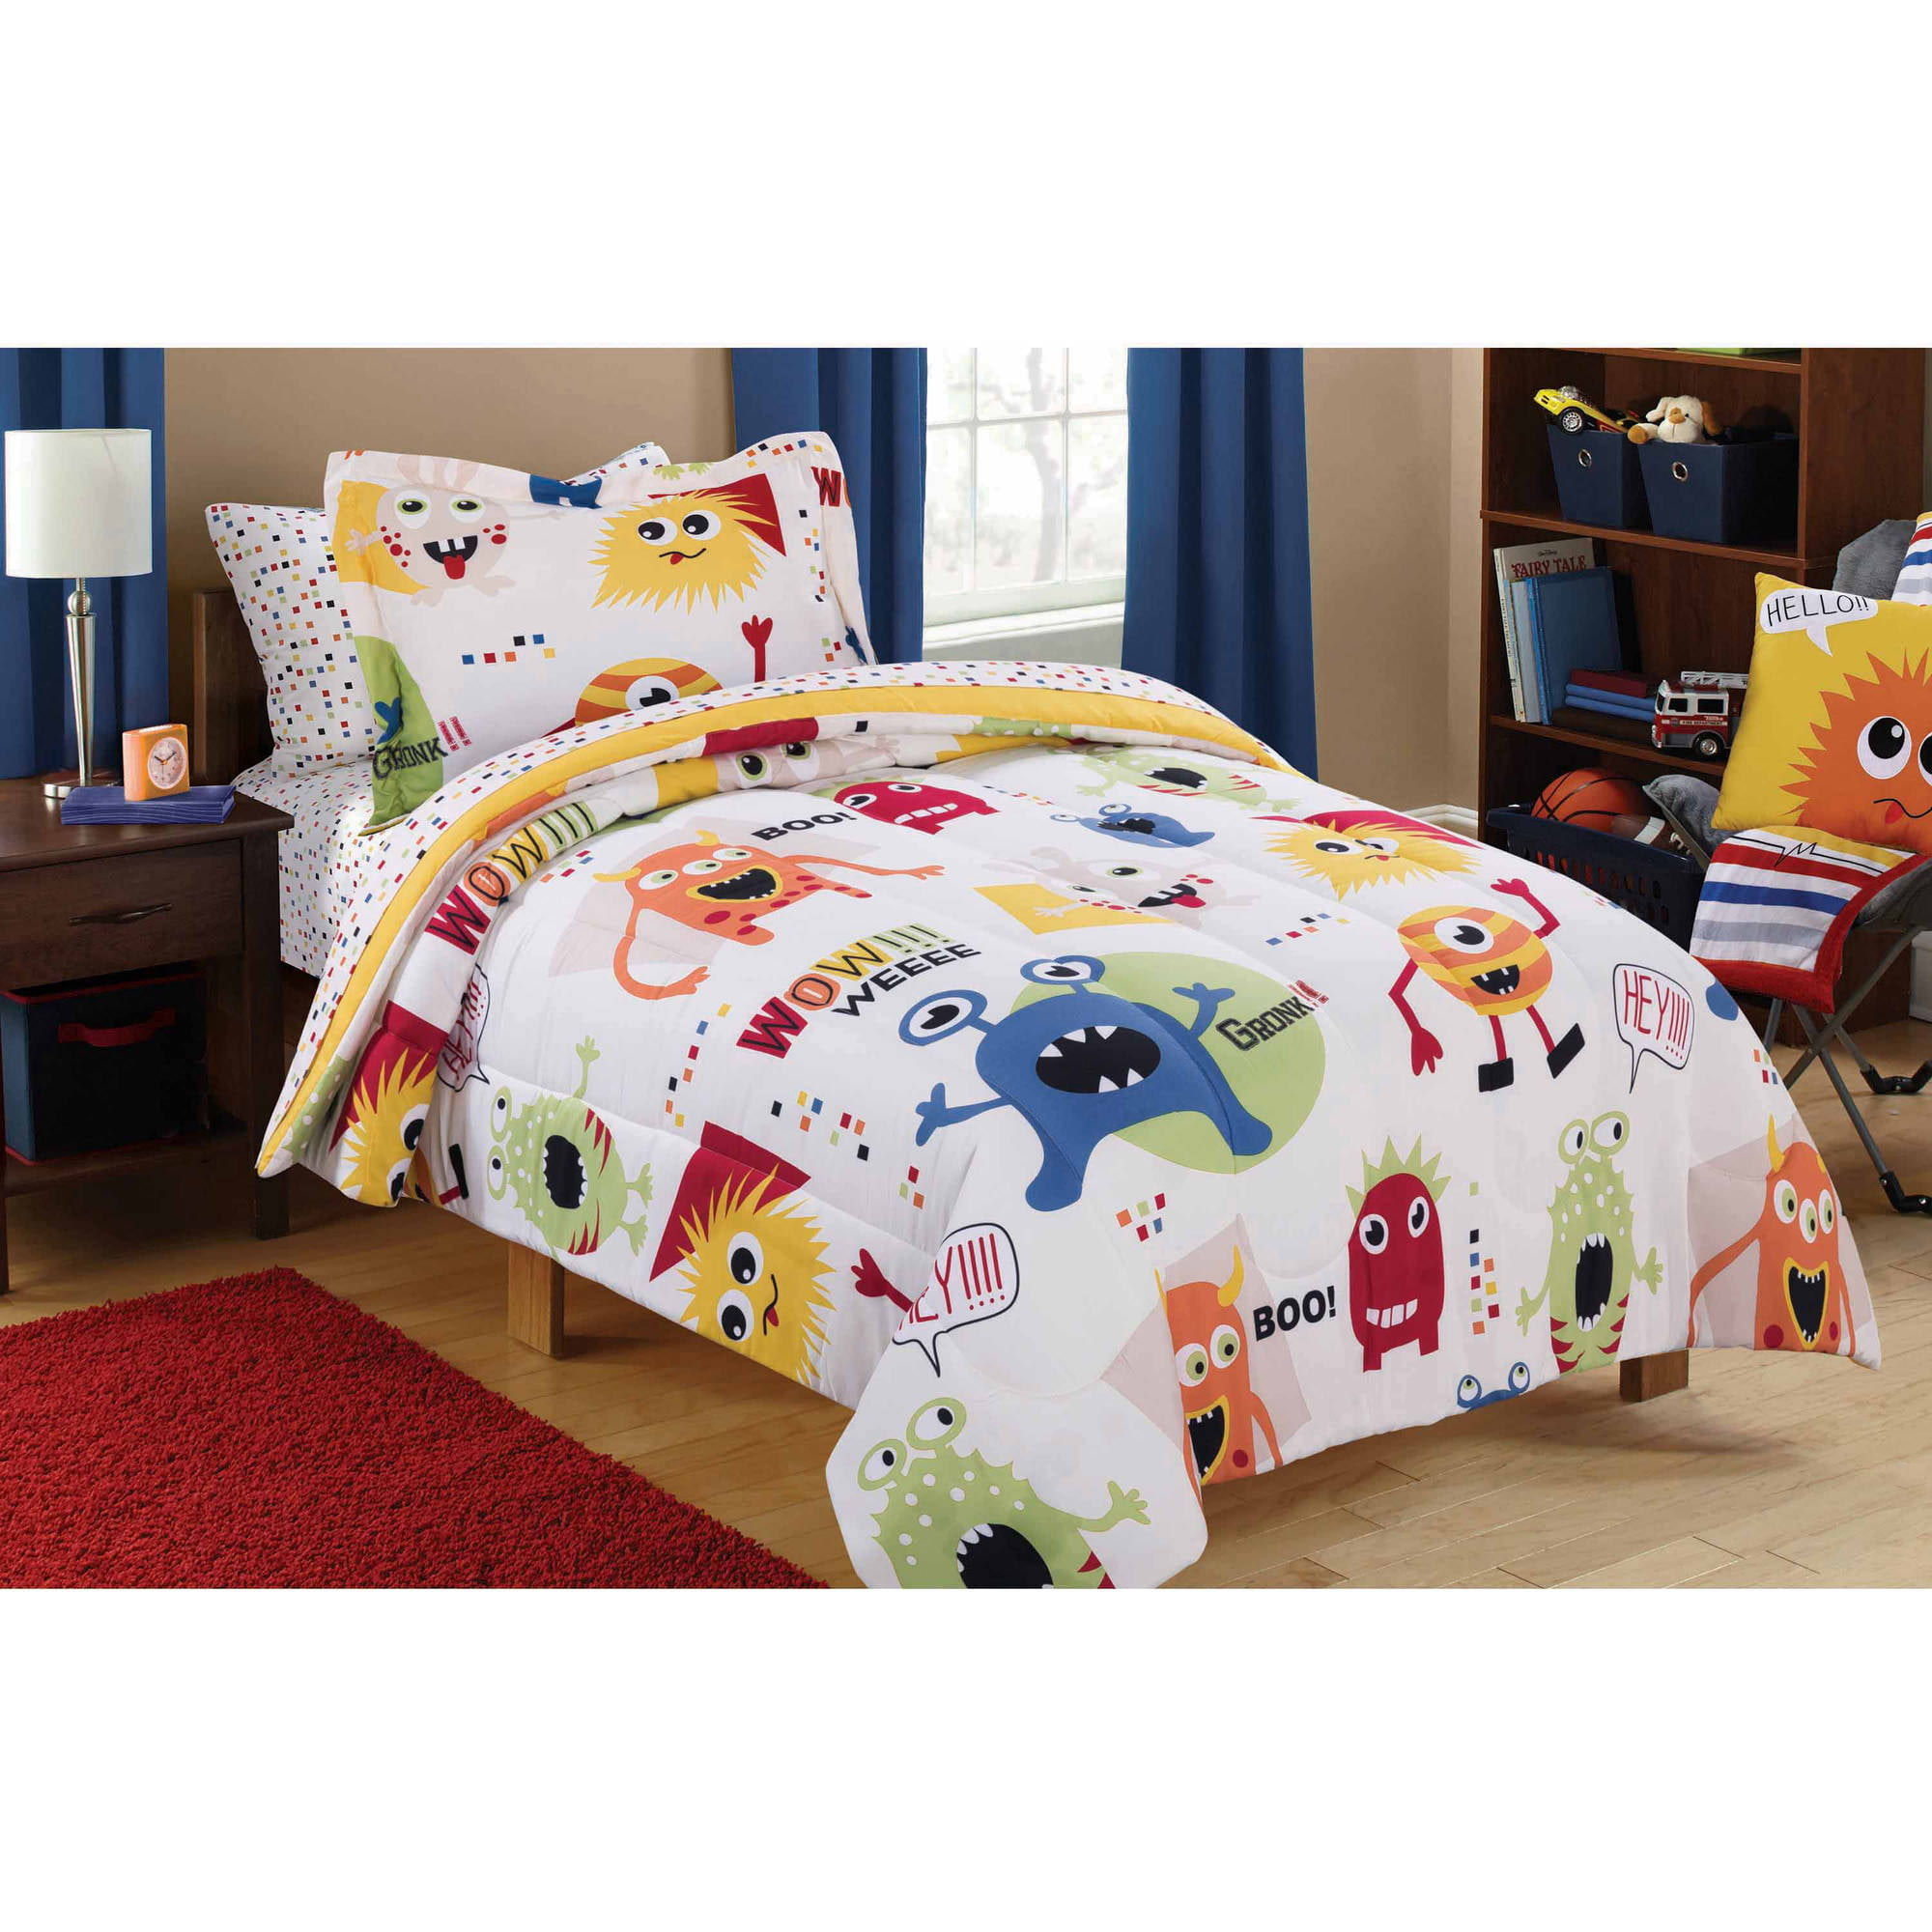 Click here to buy Mainstays Kids Monster Mix Bed in a Bag Coordinating Bedding Set by Keeco, LLC.